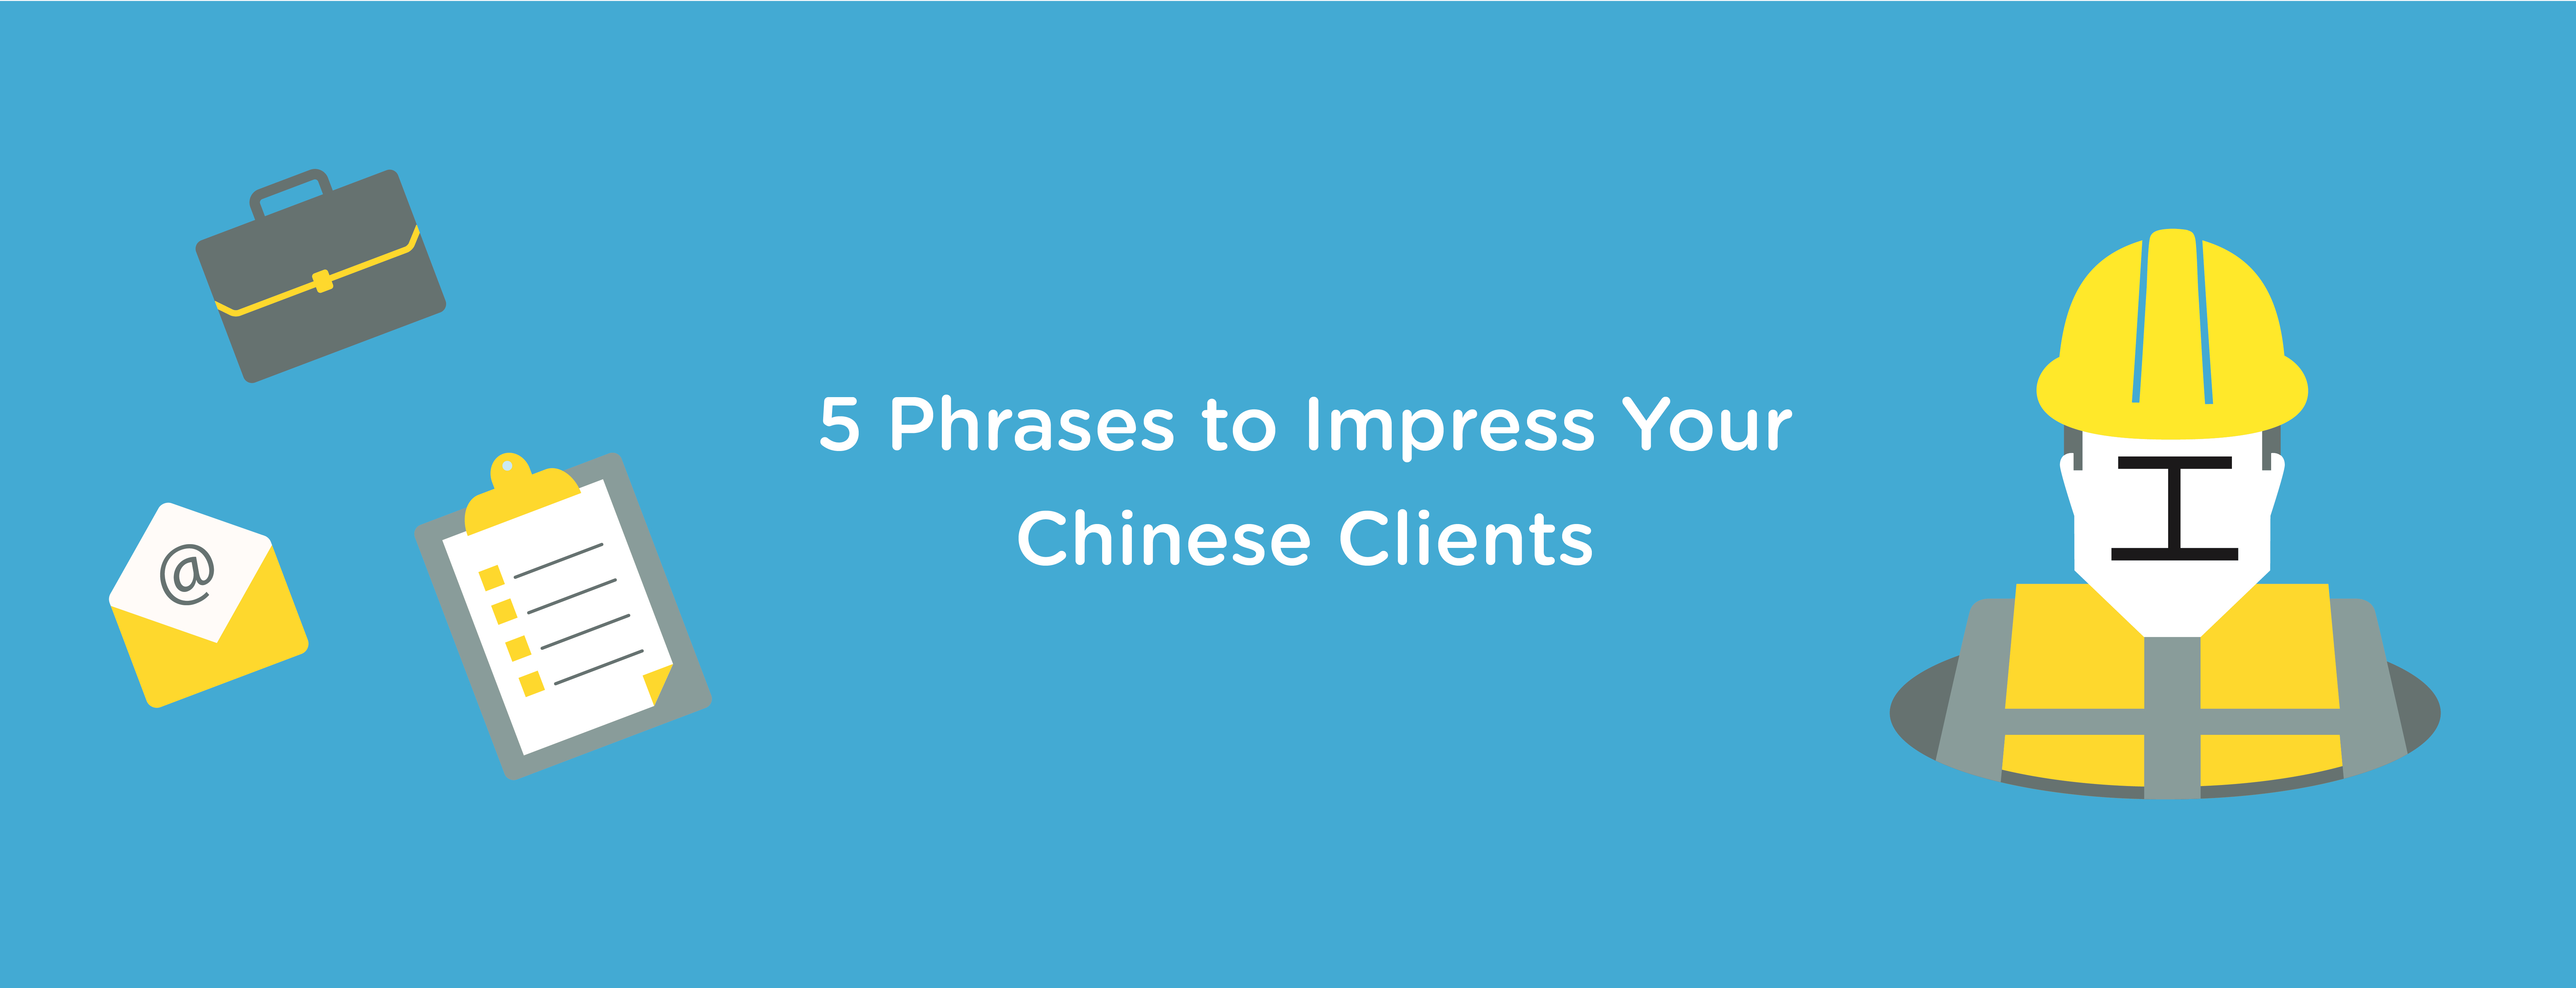 Blog 5 phrases to impress your chinese clients chineasy the terms business world and china are becoming synonymous in global trade the chinese renminbi is now more widely used than the euro kristyandbryce Gallery